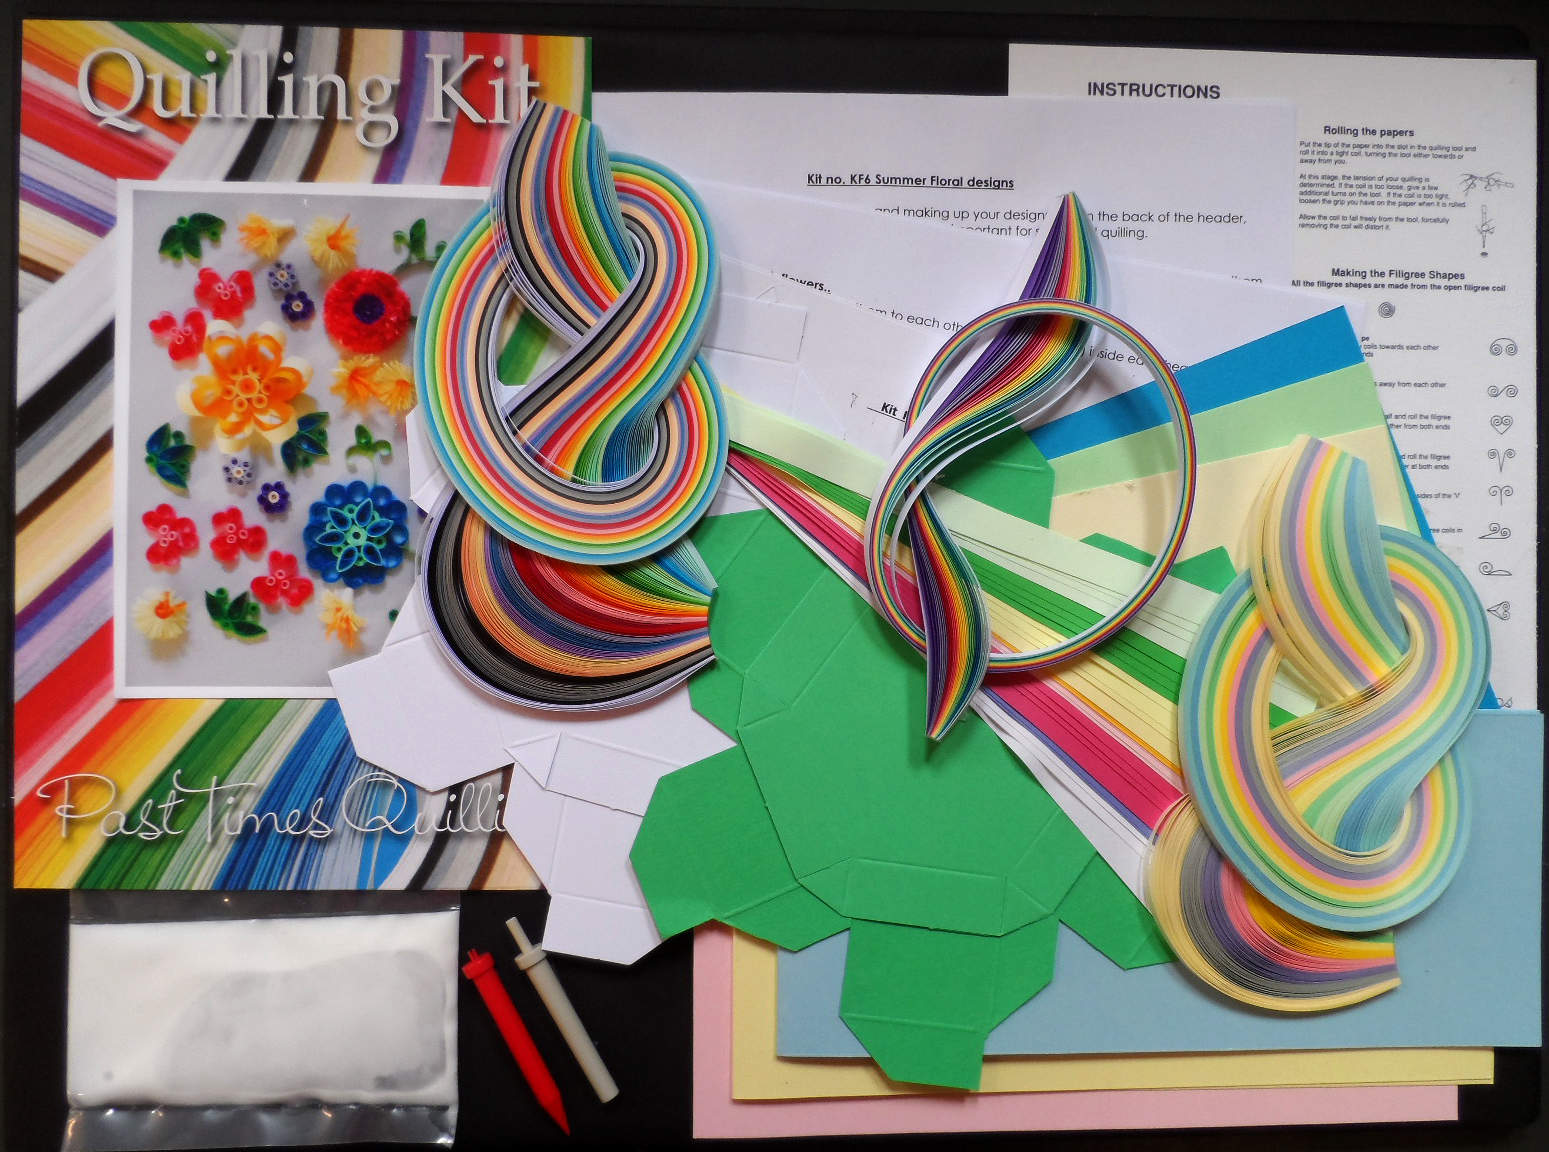 Quilling Kit - Floral Quilling Designs for Summer